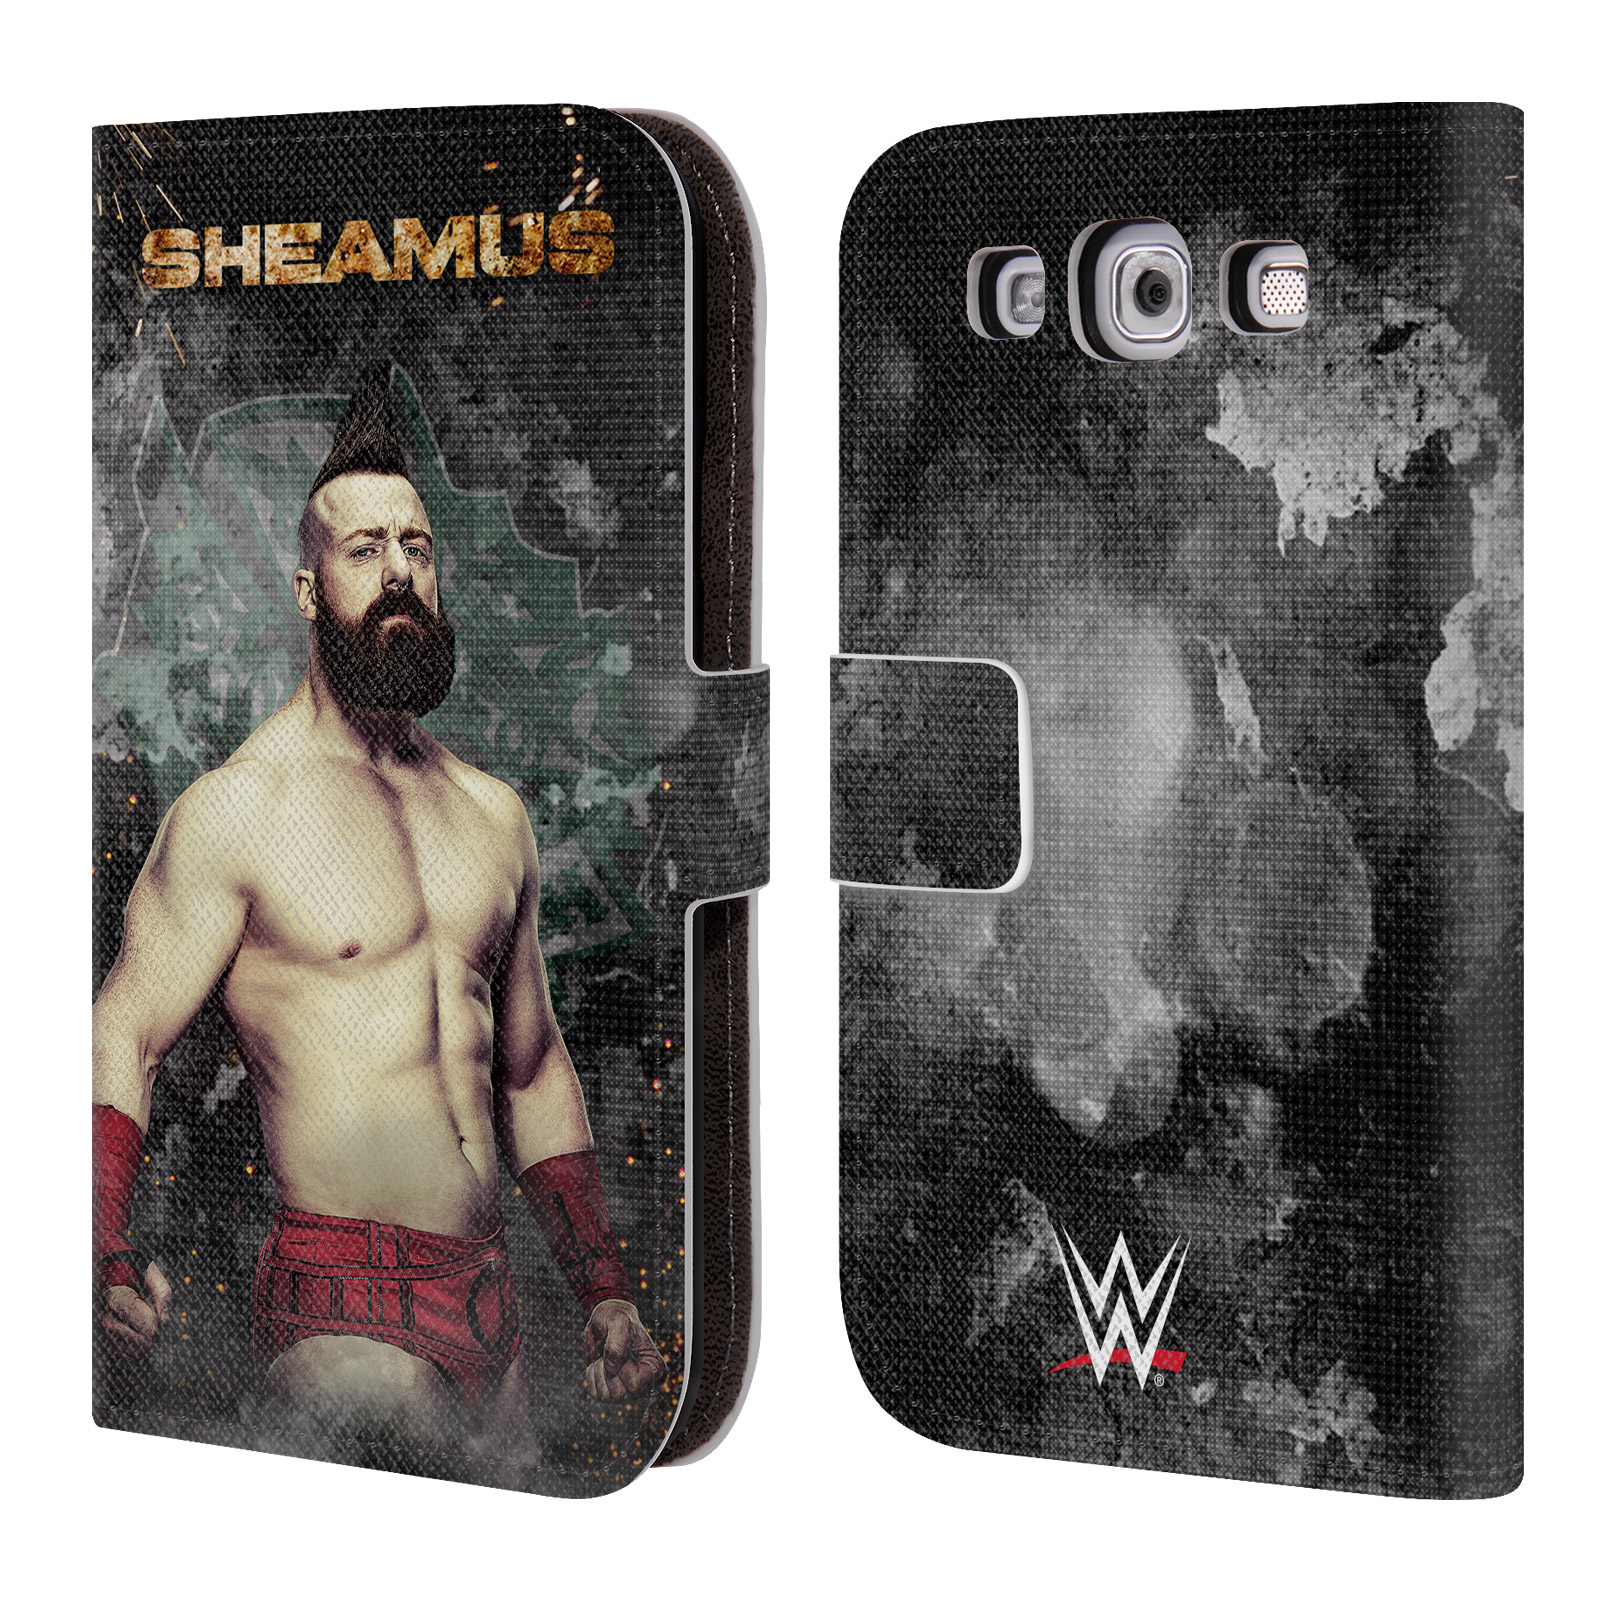 Official Wwe Sheamus Leather Book Wallet Case Cover For Samsung